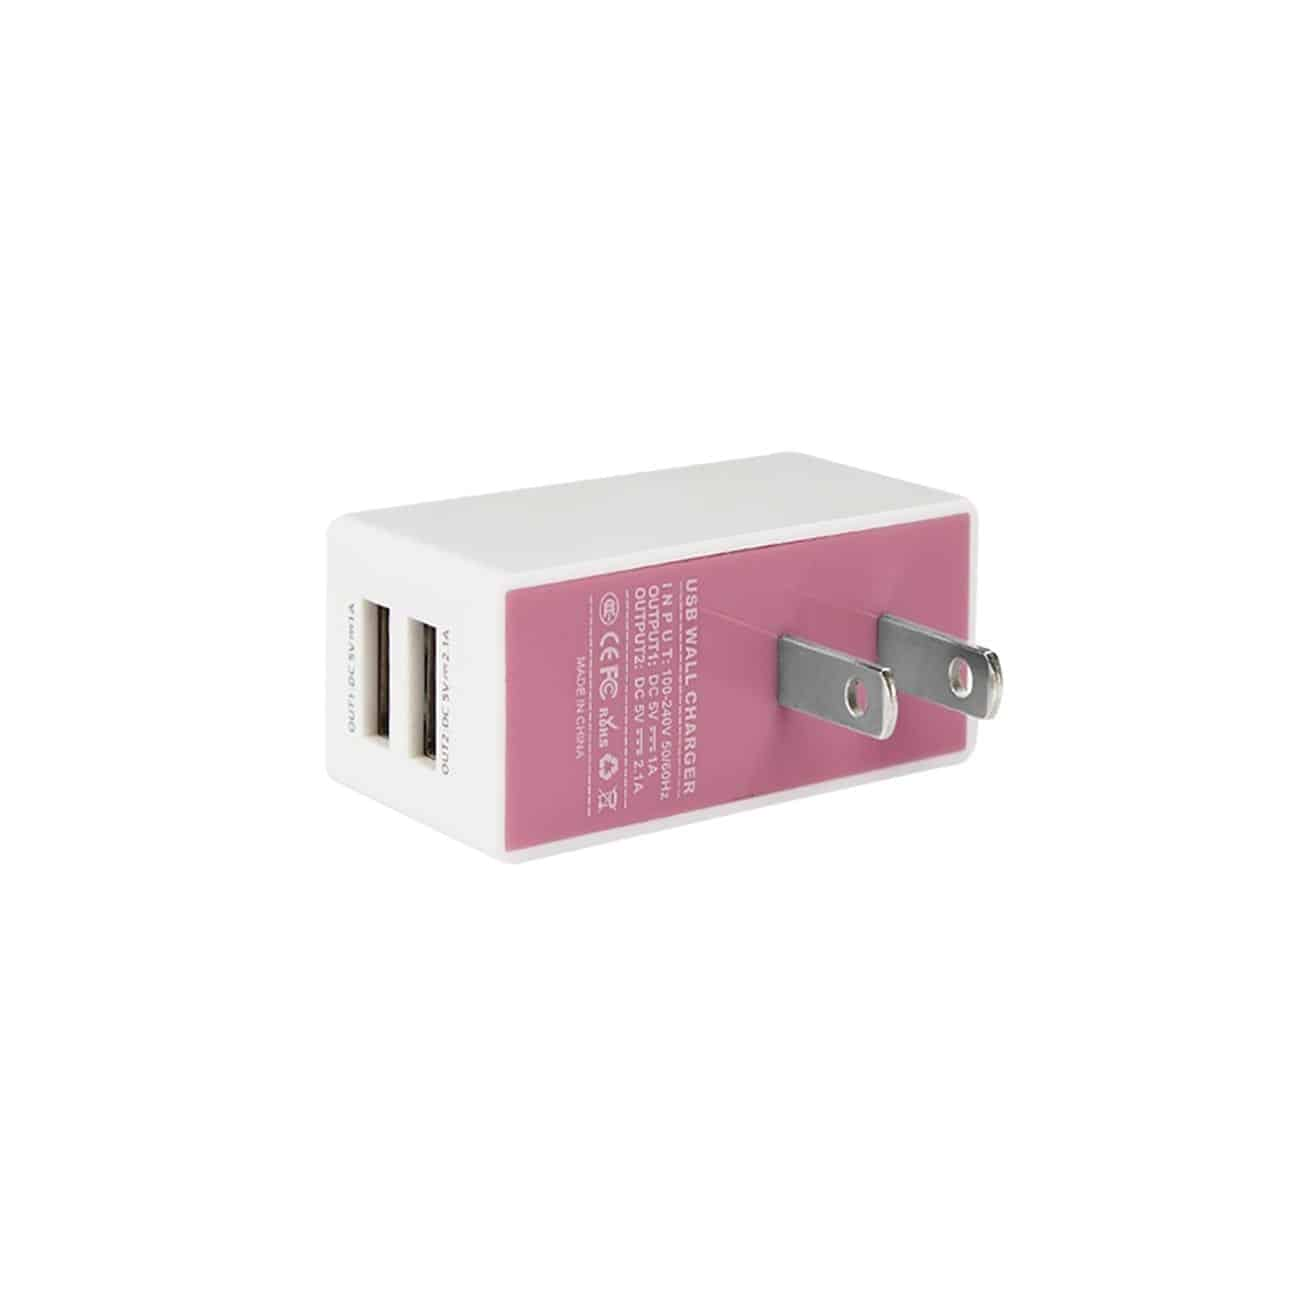 2 AMP DUAL PORT WALL USB TRAVEL ADAPTER CHARGER IN PINK WHITE